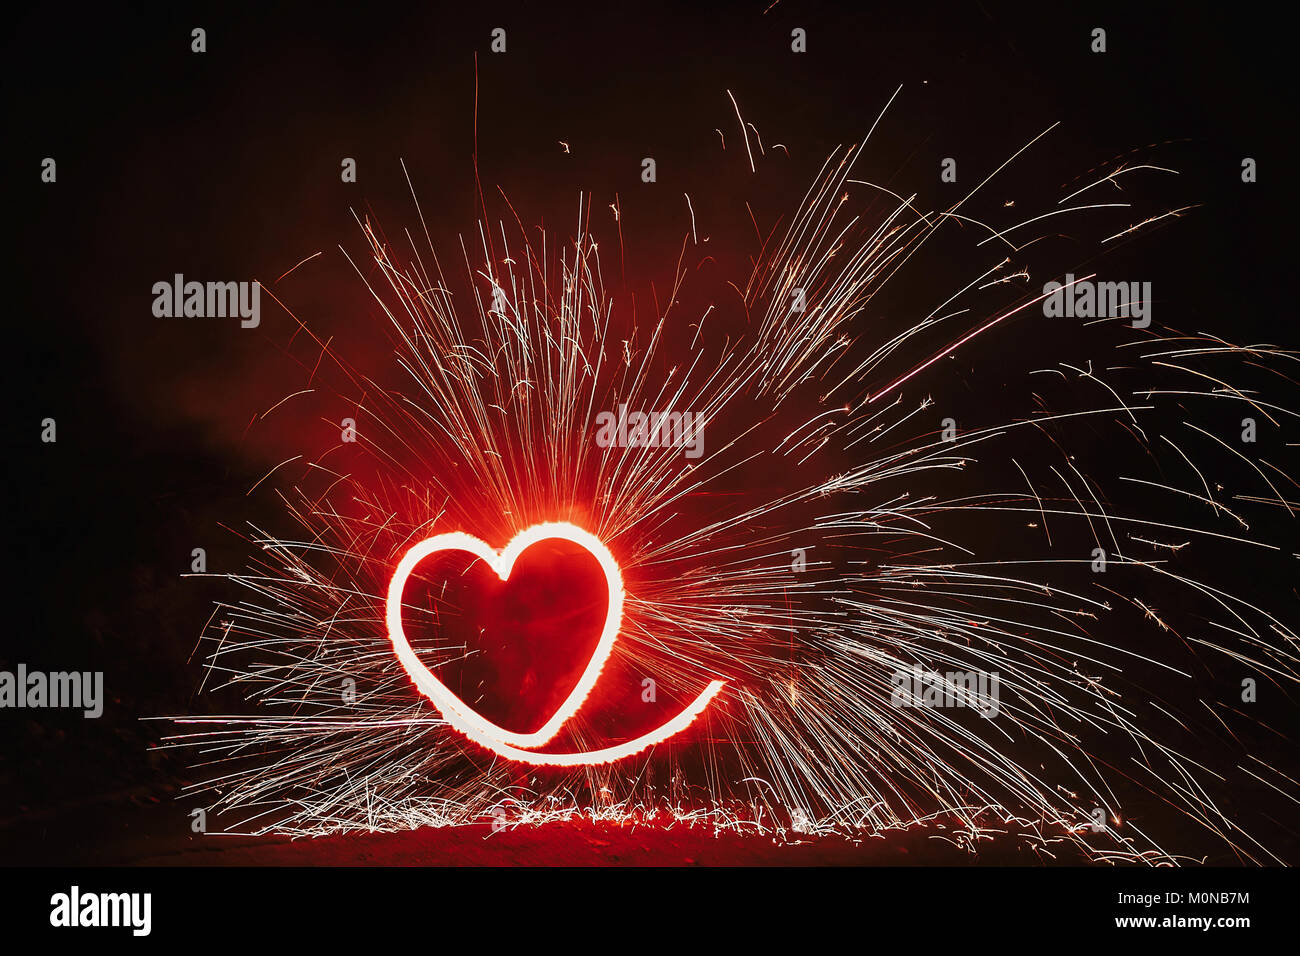 Wedding Fireworks Stock Photos & Wedding Fireworks Stock Images - Alamy